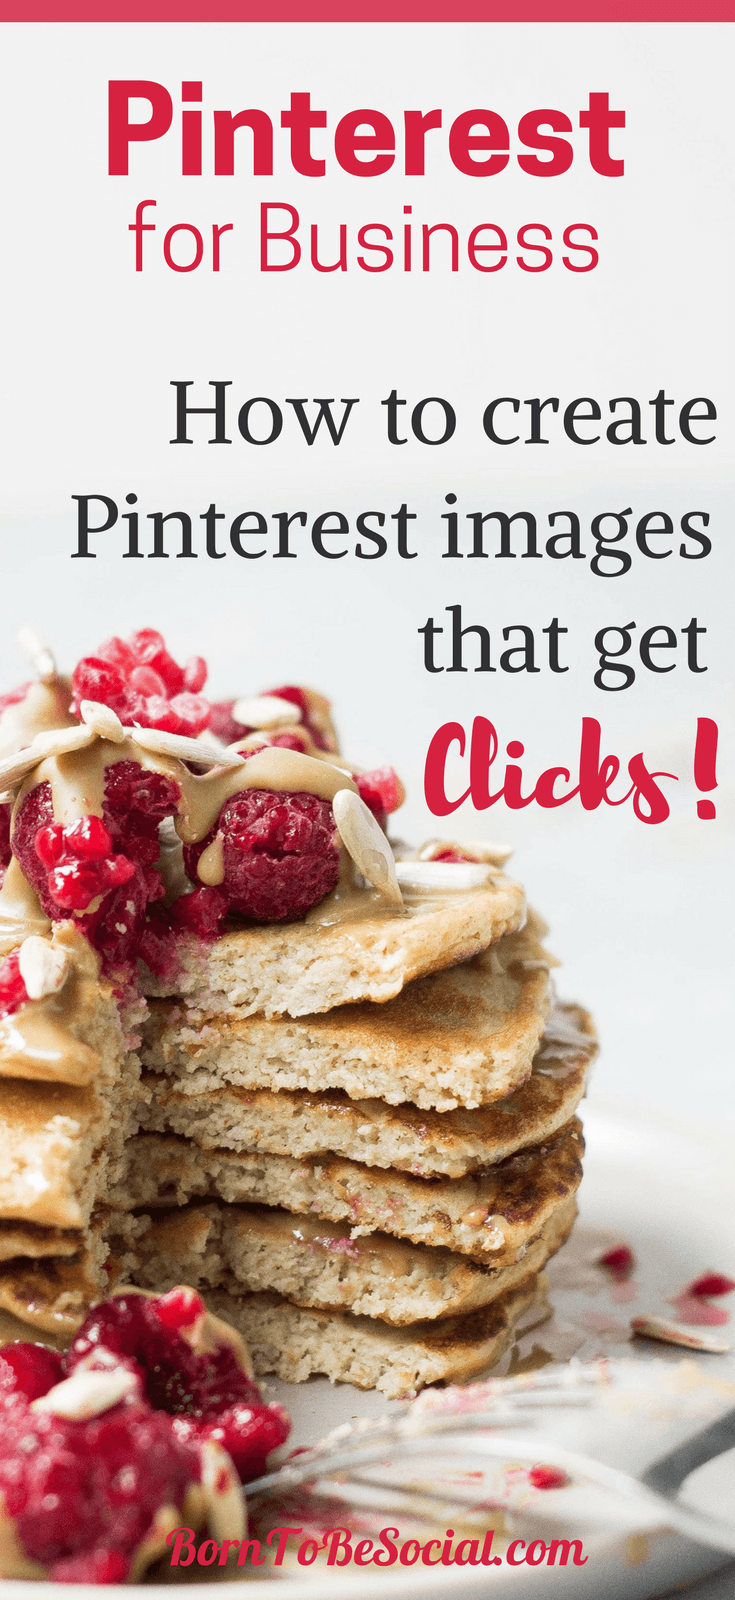 THIS IS HOW TO CREATE PINTEREST IMAGES THAT GET CLICKS! – A picture speaks a thousand words, especially on Pinterest. To attract attention, compelling images are key. Here's what you need to know to get people to click and share your pins. | via @BornToBeSocial, Pinterest Marketing & Consulting | Pinterest for Business #ExpertPinterest #PinterestForBusiness #PinterestMarketingTips #Pinterest